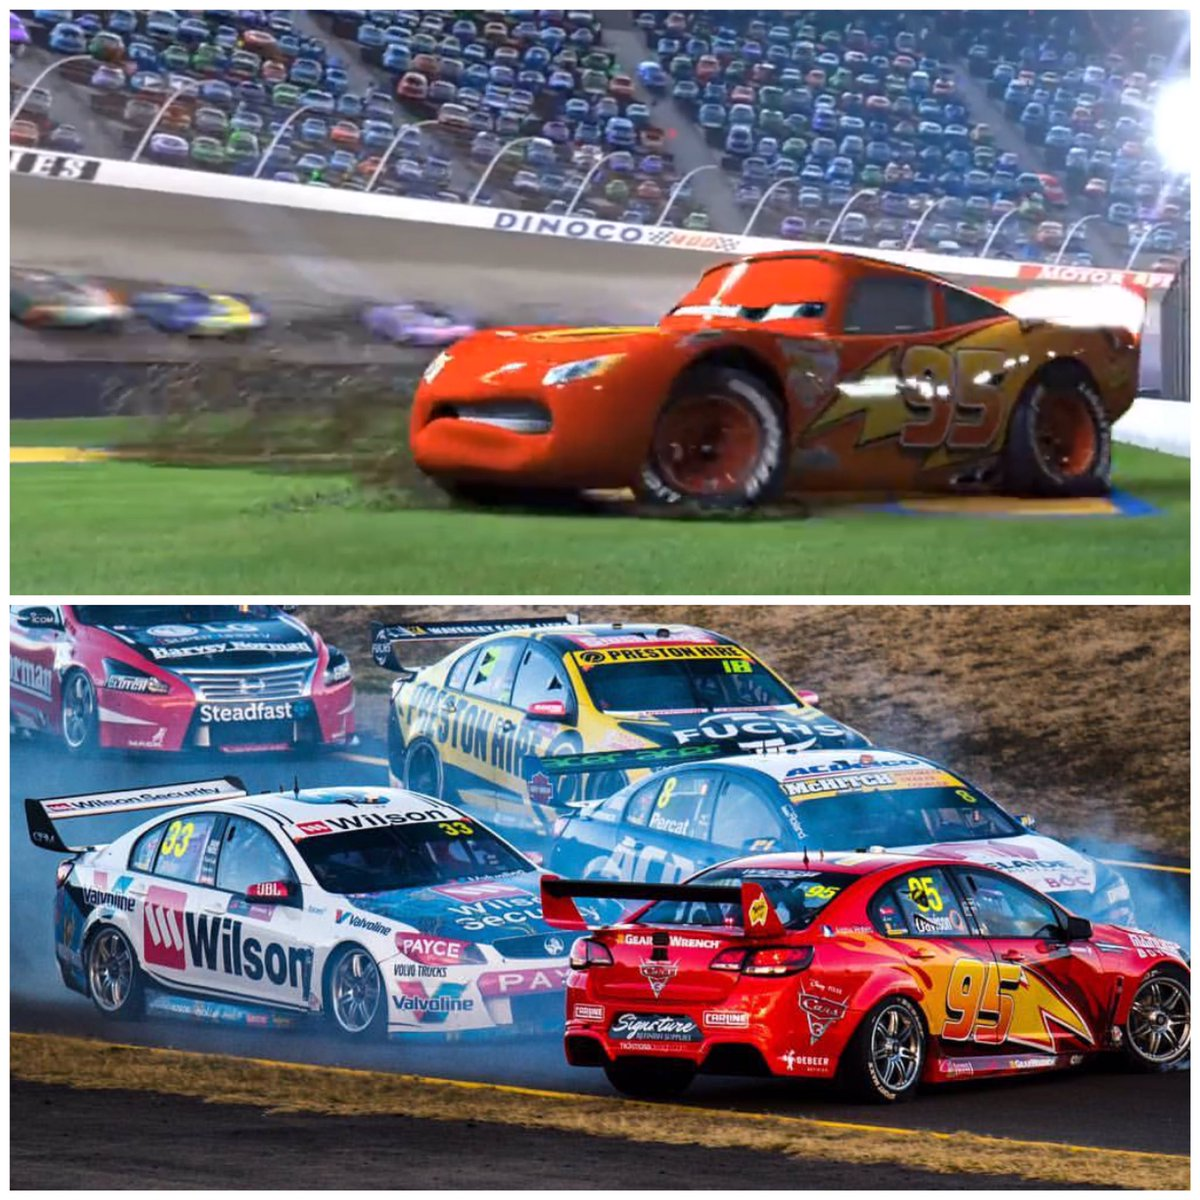 When life imitates art! Great recovery from @will_davison after this off early in race 17! #VASC #Cars #Disney #LightningMcQueen #KaChow<br>http://pic.twitter.com/IypZr7aulX